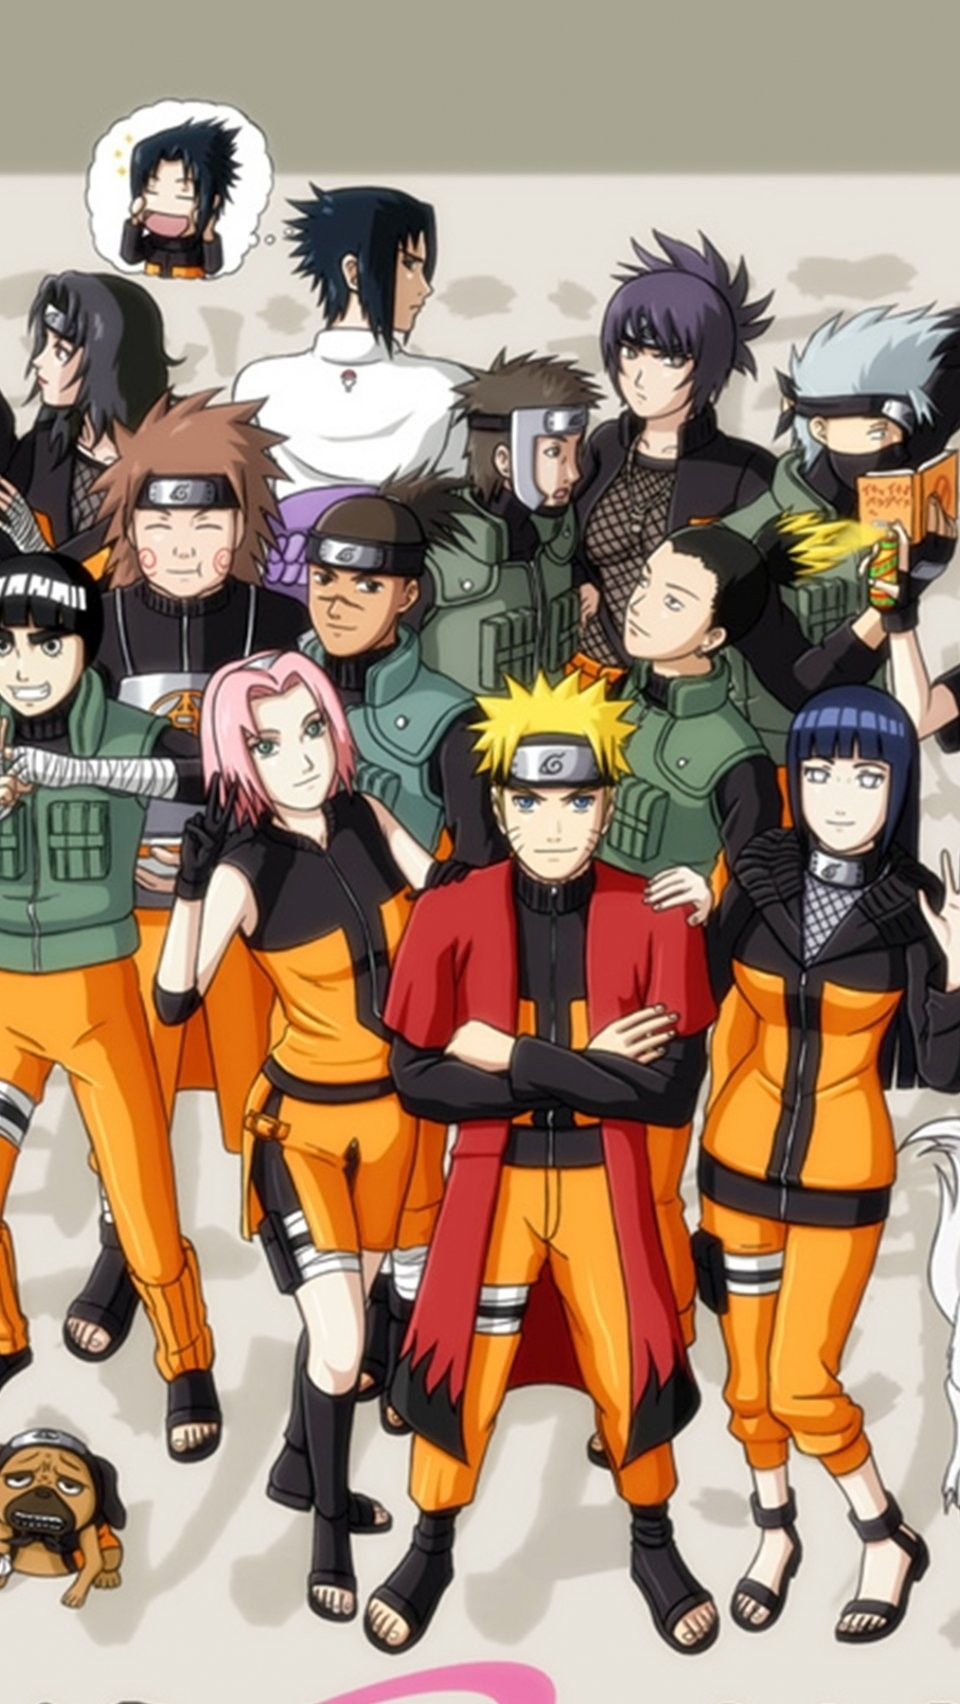 naruto style worldwide iphone 6 wallpaper - naruto iphone 6